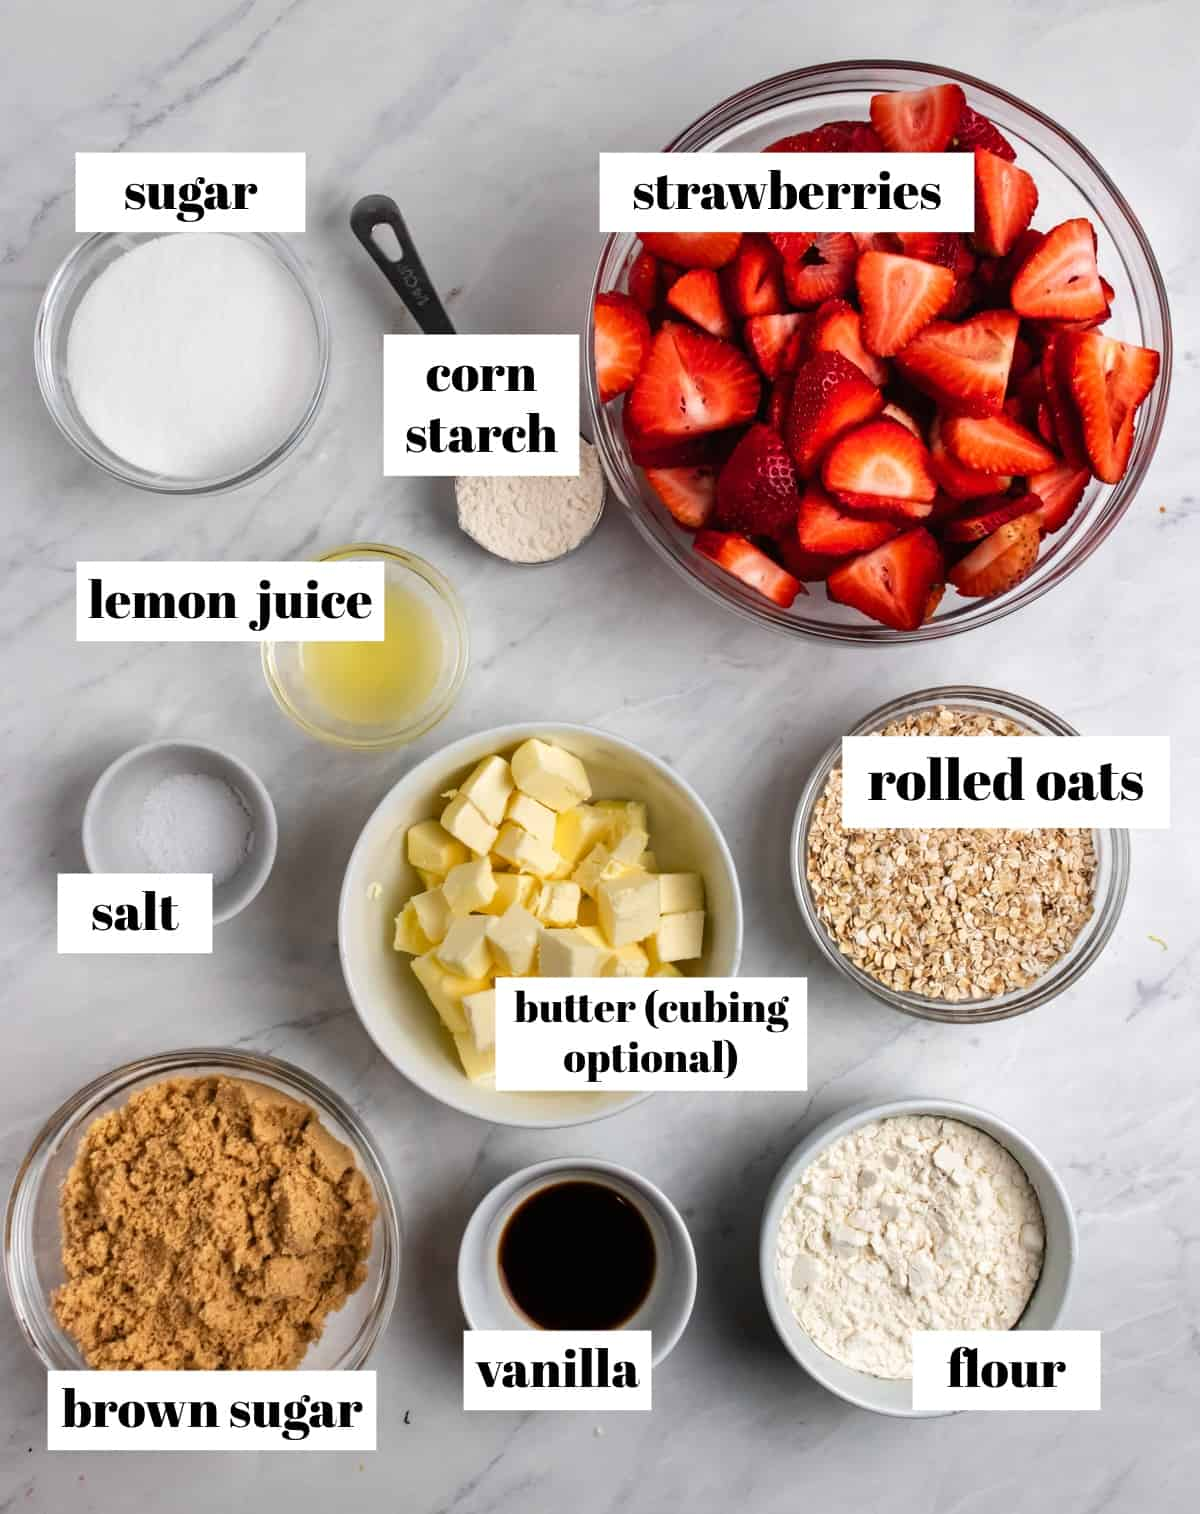 Oats, butter, brown sugar, vanilla and other ingredients labeled on a counter.